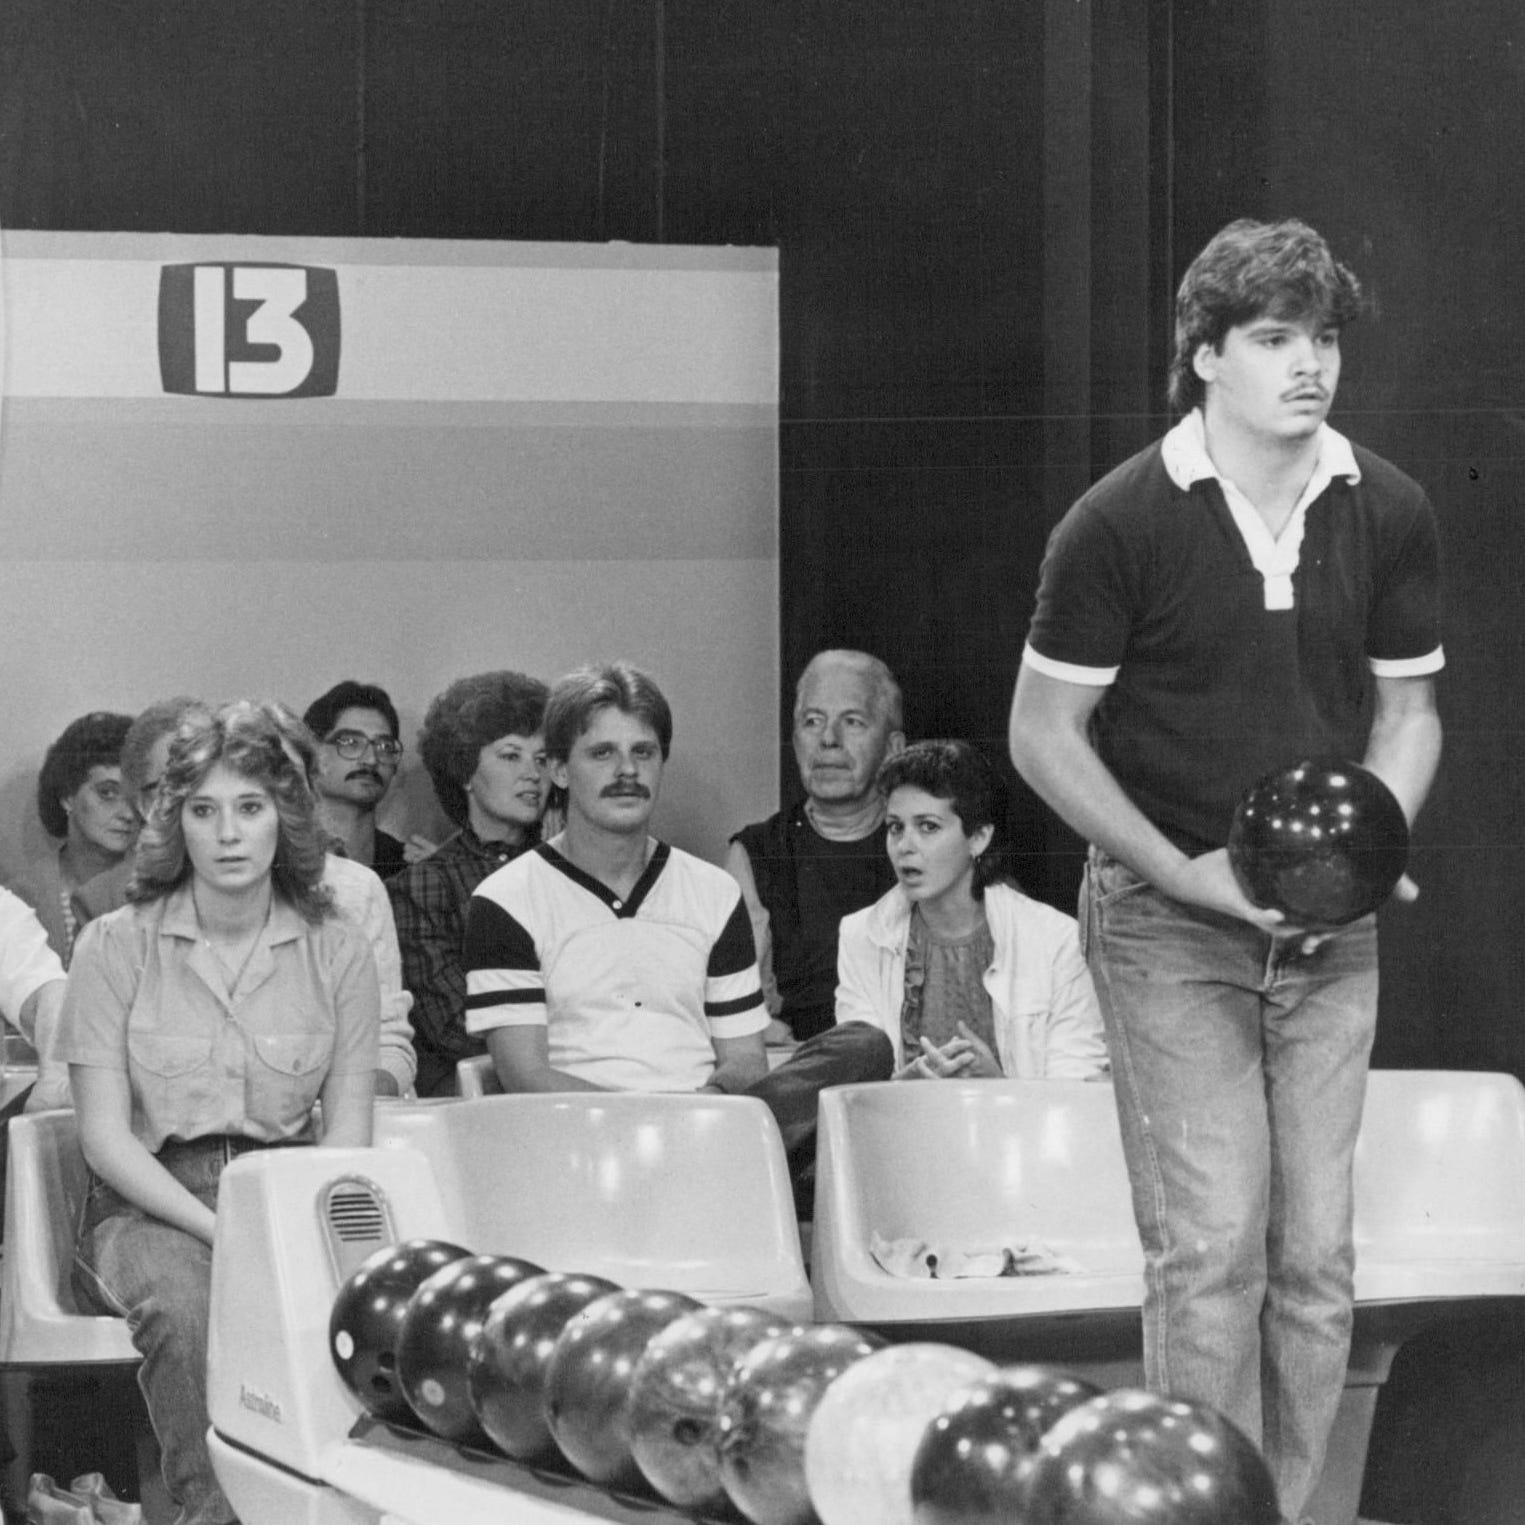 Whatever Happened To ... 'Bowling for Dollars'?